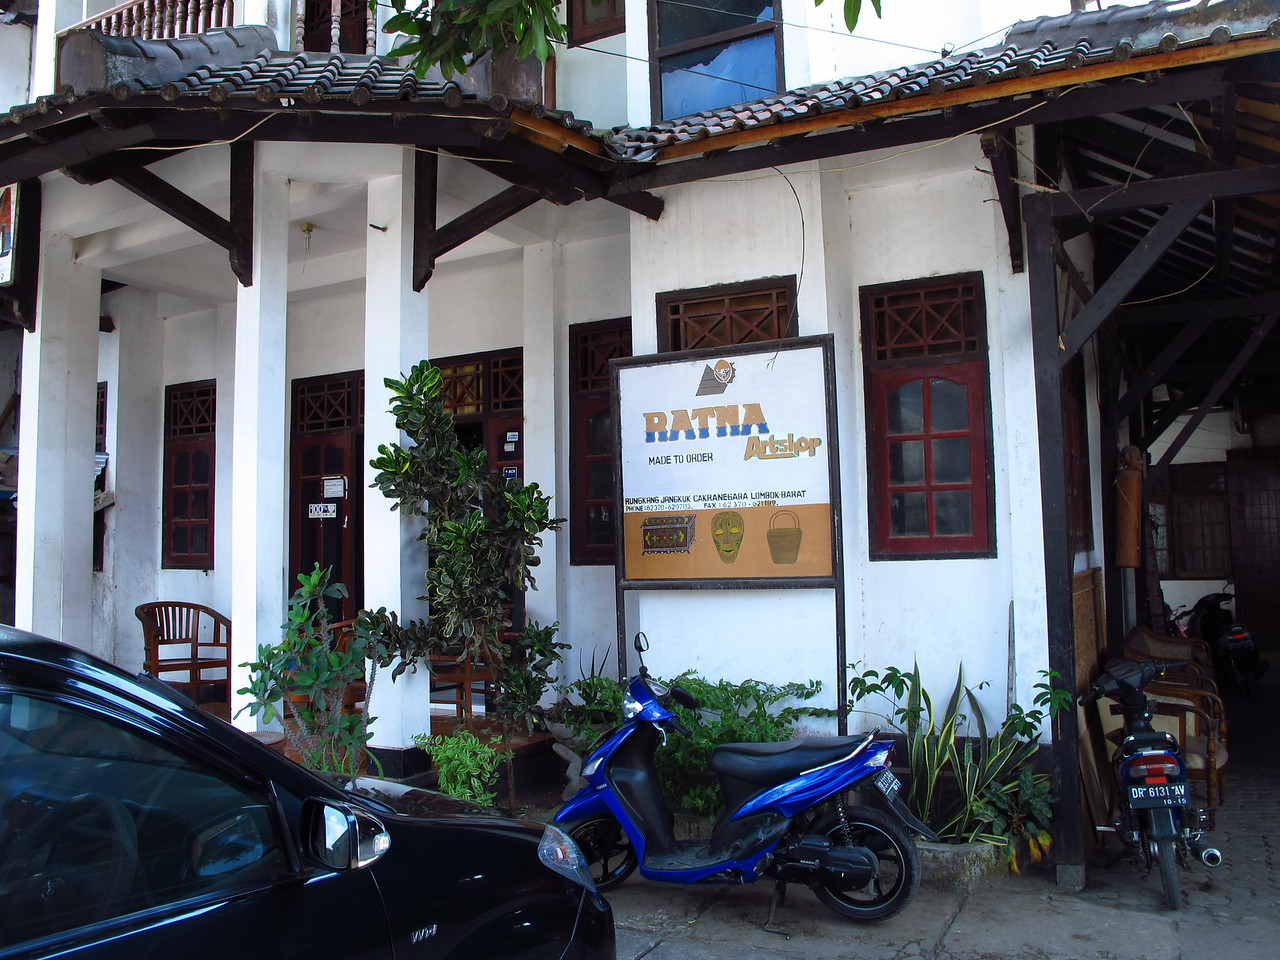 Ratna Art Shop is a small wood crafts artshop in a small artists community outside, Mataram, the largest city in Lombok.  They specialize in lacquered furniture and carved wood pieces.